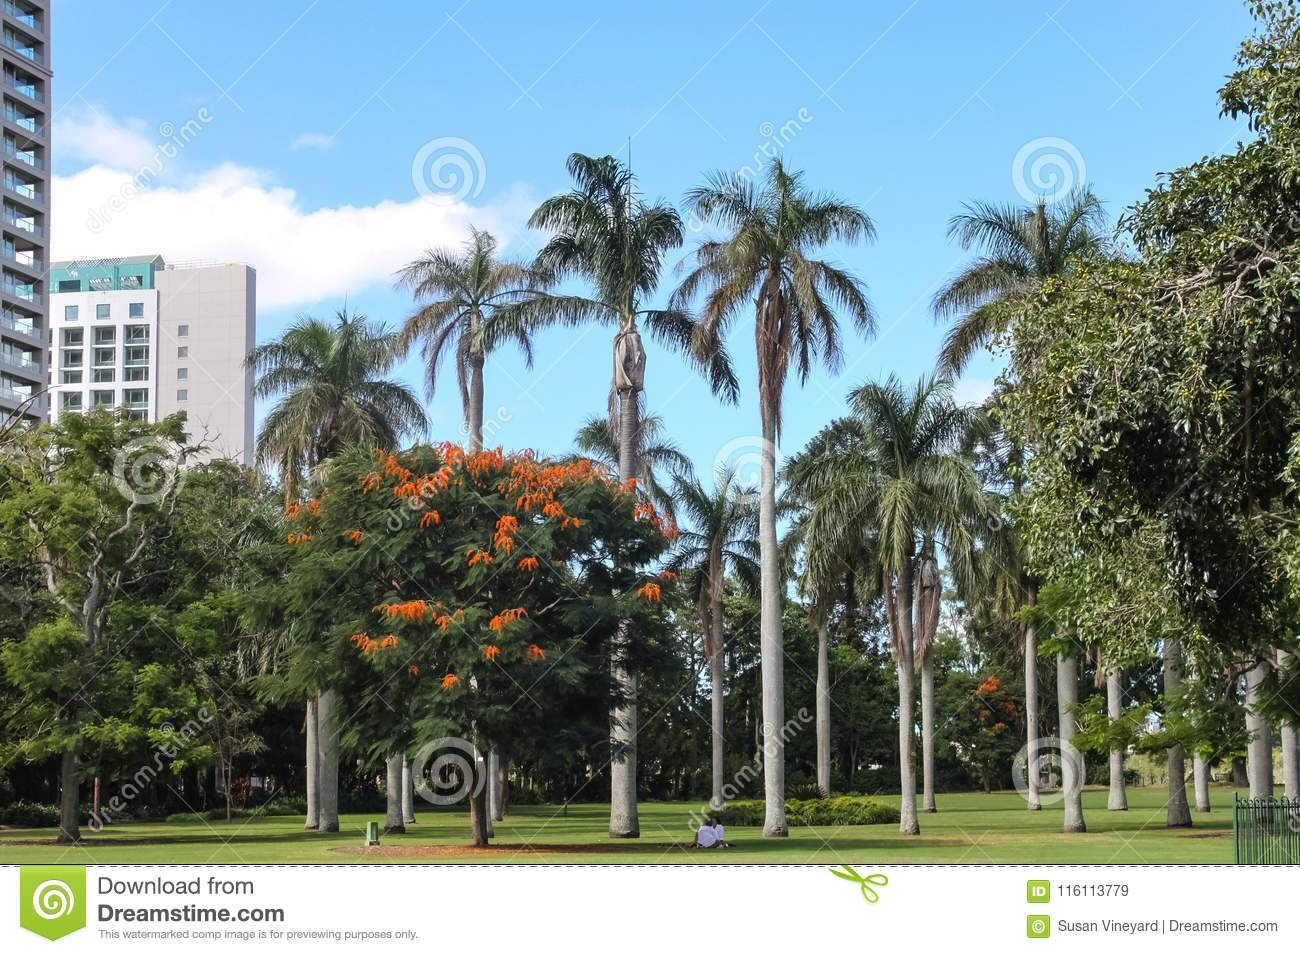 Tall palm trees and Royal poinciana Delonix regia in Brisbanes City Botanic Gardens under blue skys with two people sitting in s